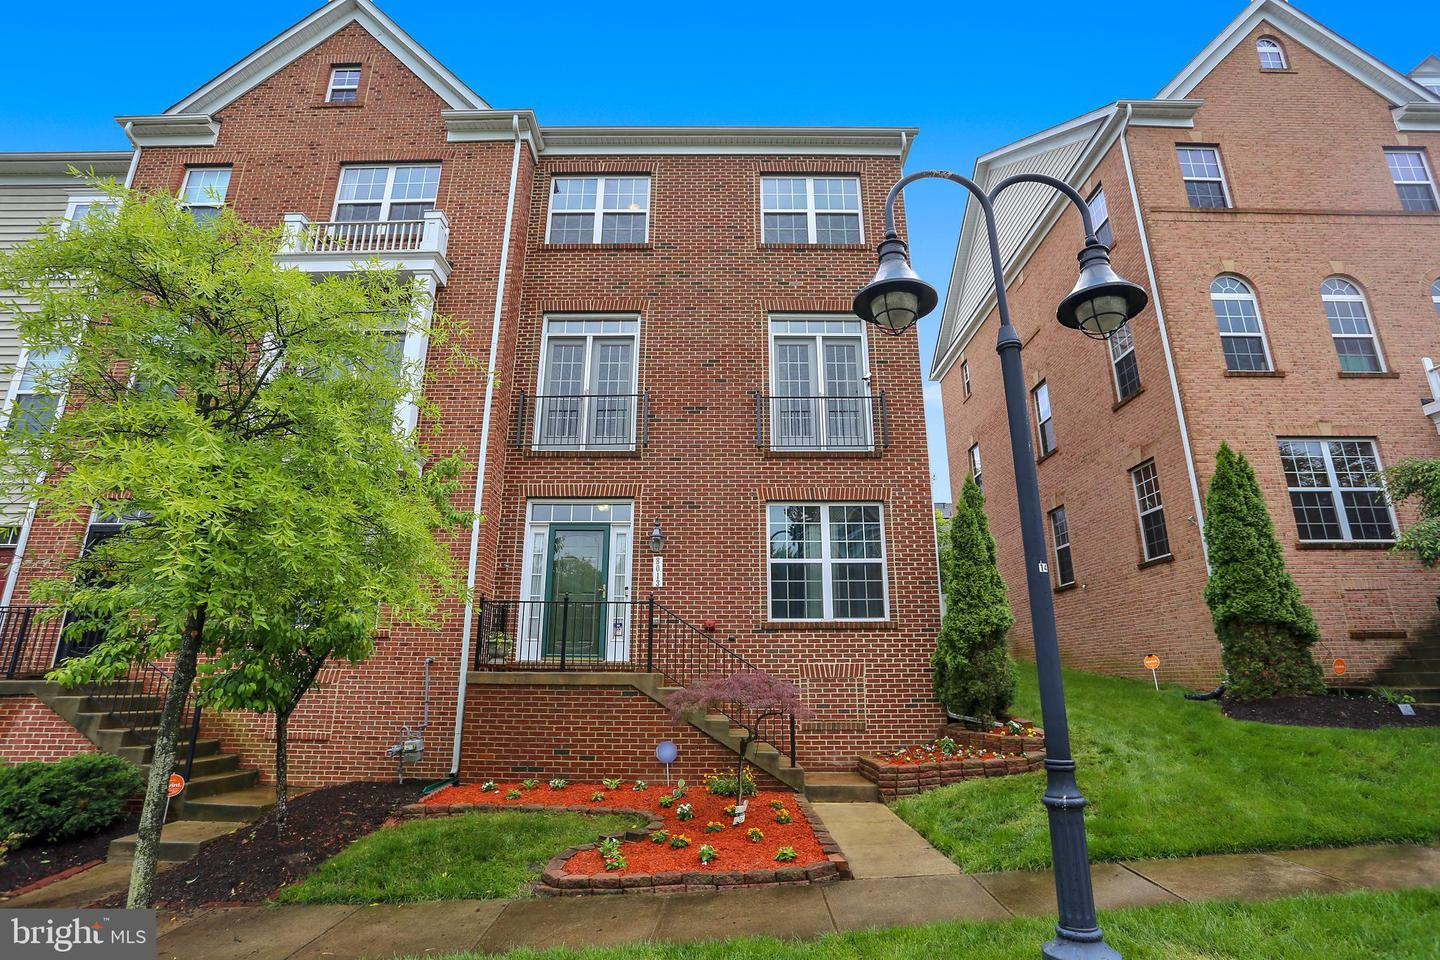 8013 SPORT VIEW ROAD, LANDOVER, Maryland